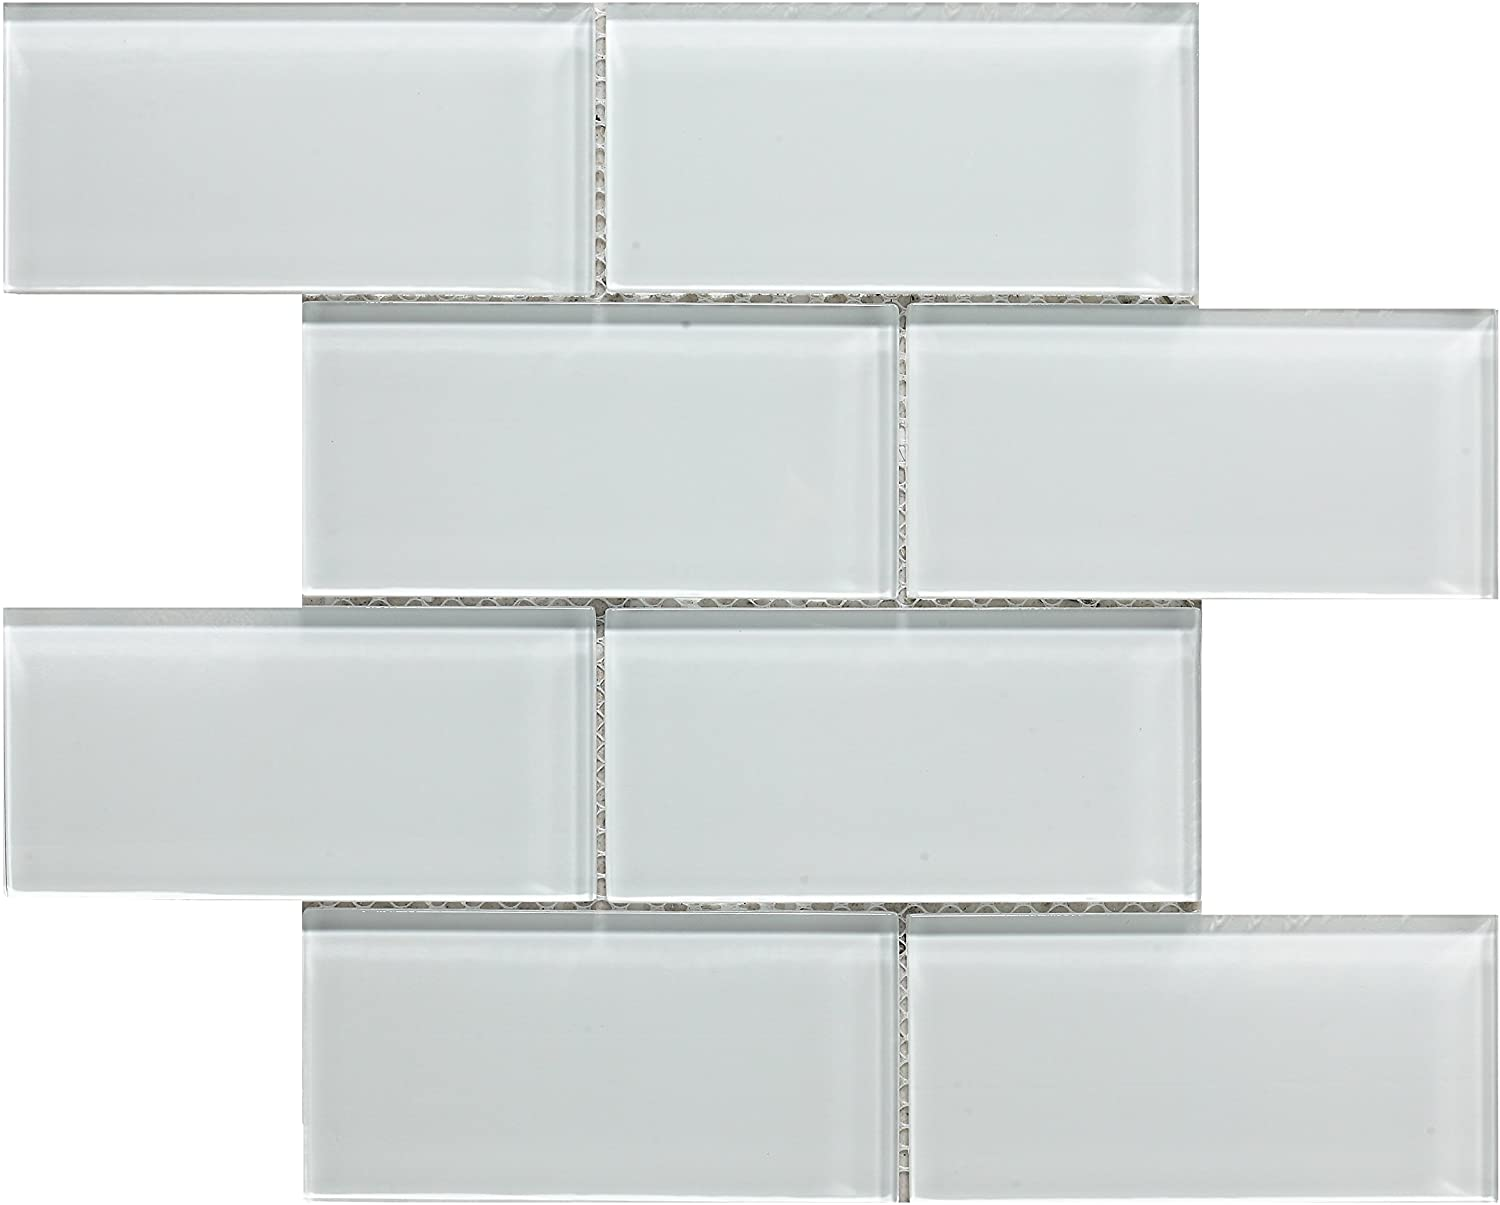 Decostyle DEC-47451AOWSOH ERB Mosaic Decorative, 8 mm, 30 x 30 cm, White,